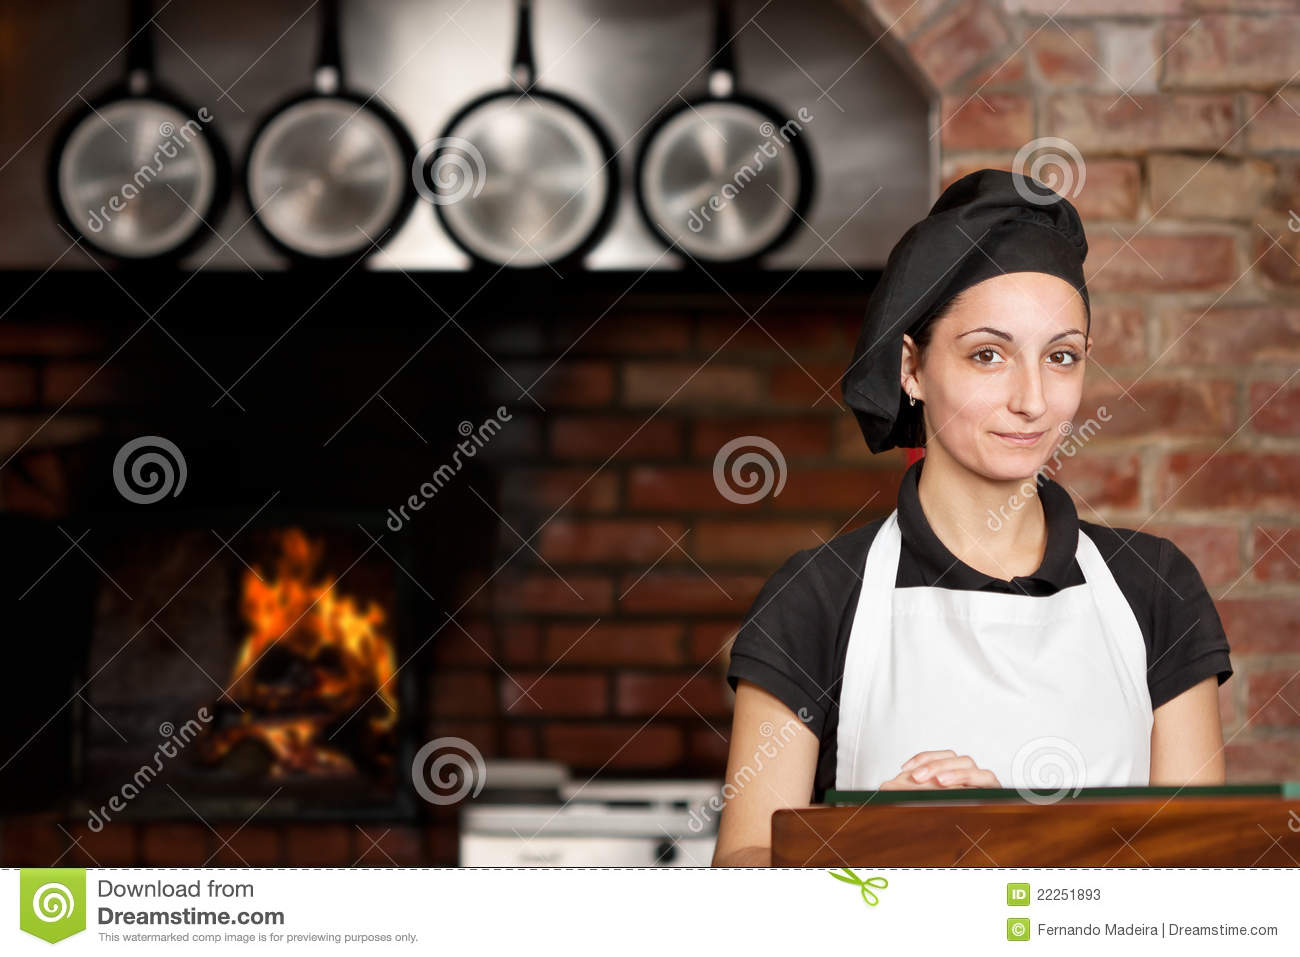 Woman Chef standing in the kitchen with wood oven